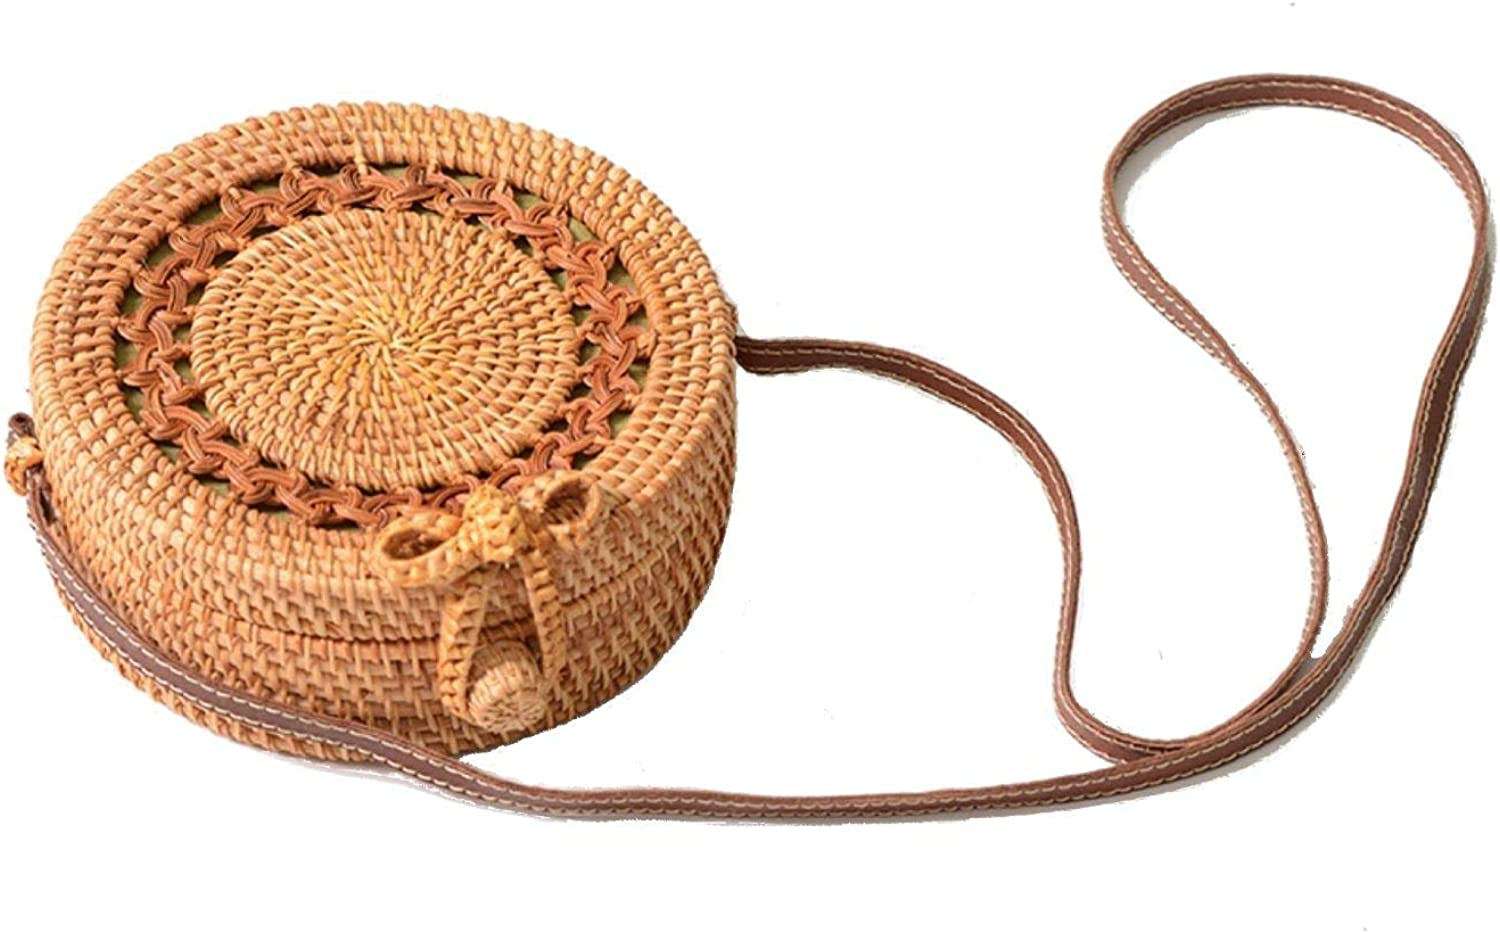 Ainico Handwoven Rattan Round Bag Shoulder Leather Straps for Outdoor Leisure